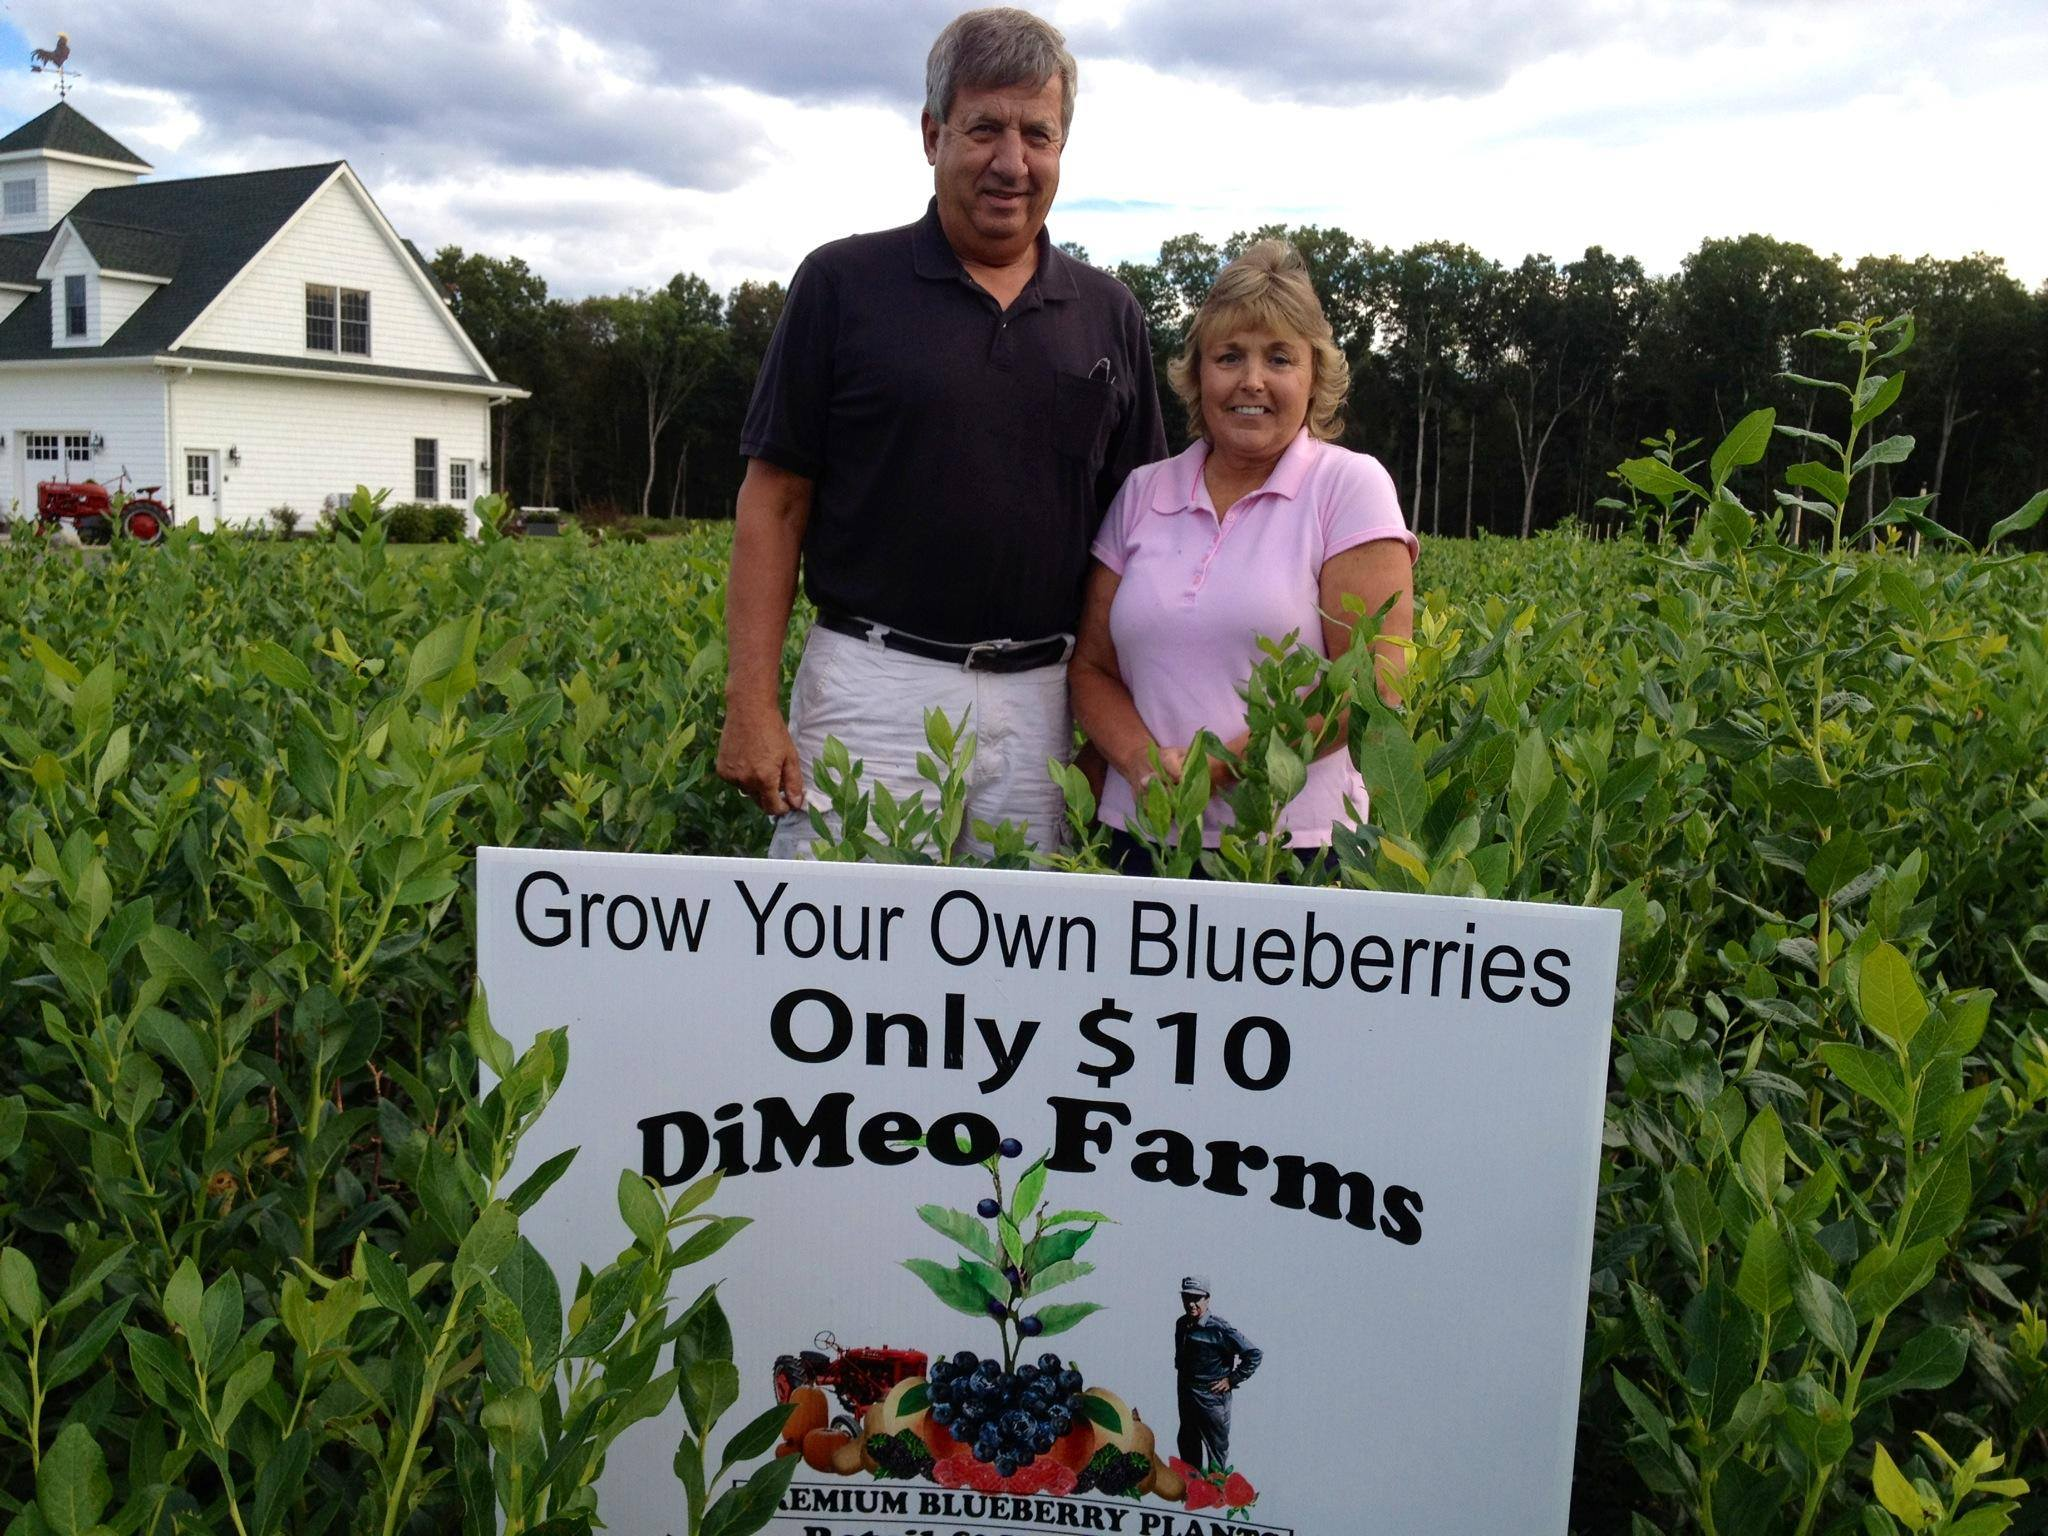 How to plant blueberry bush - Kids Love Blueberries